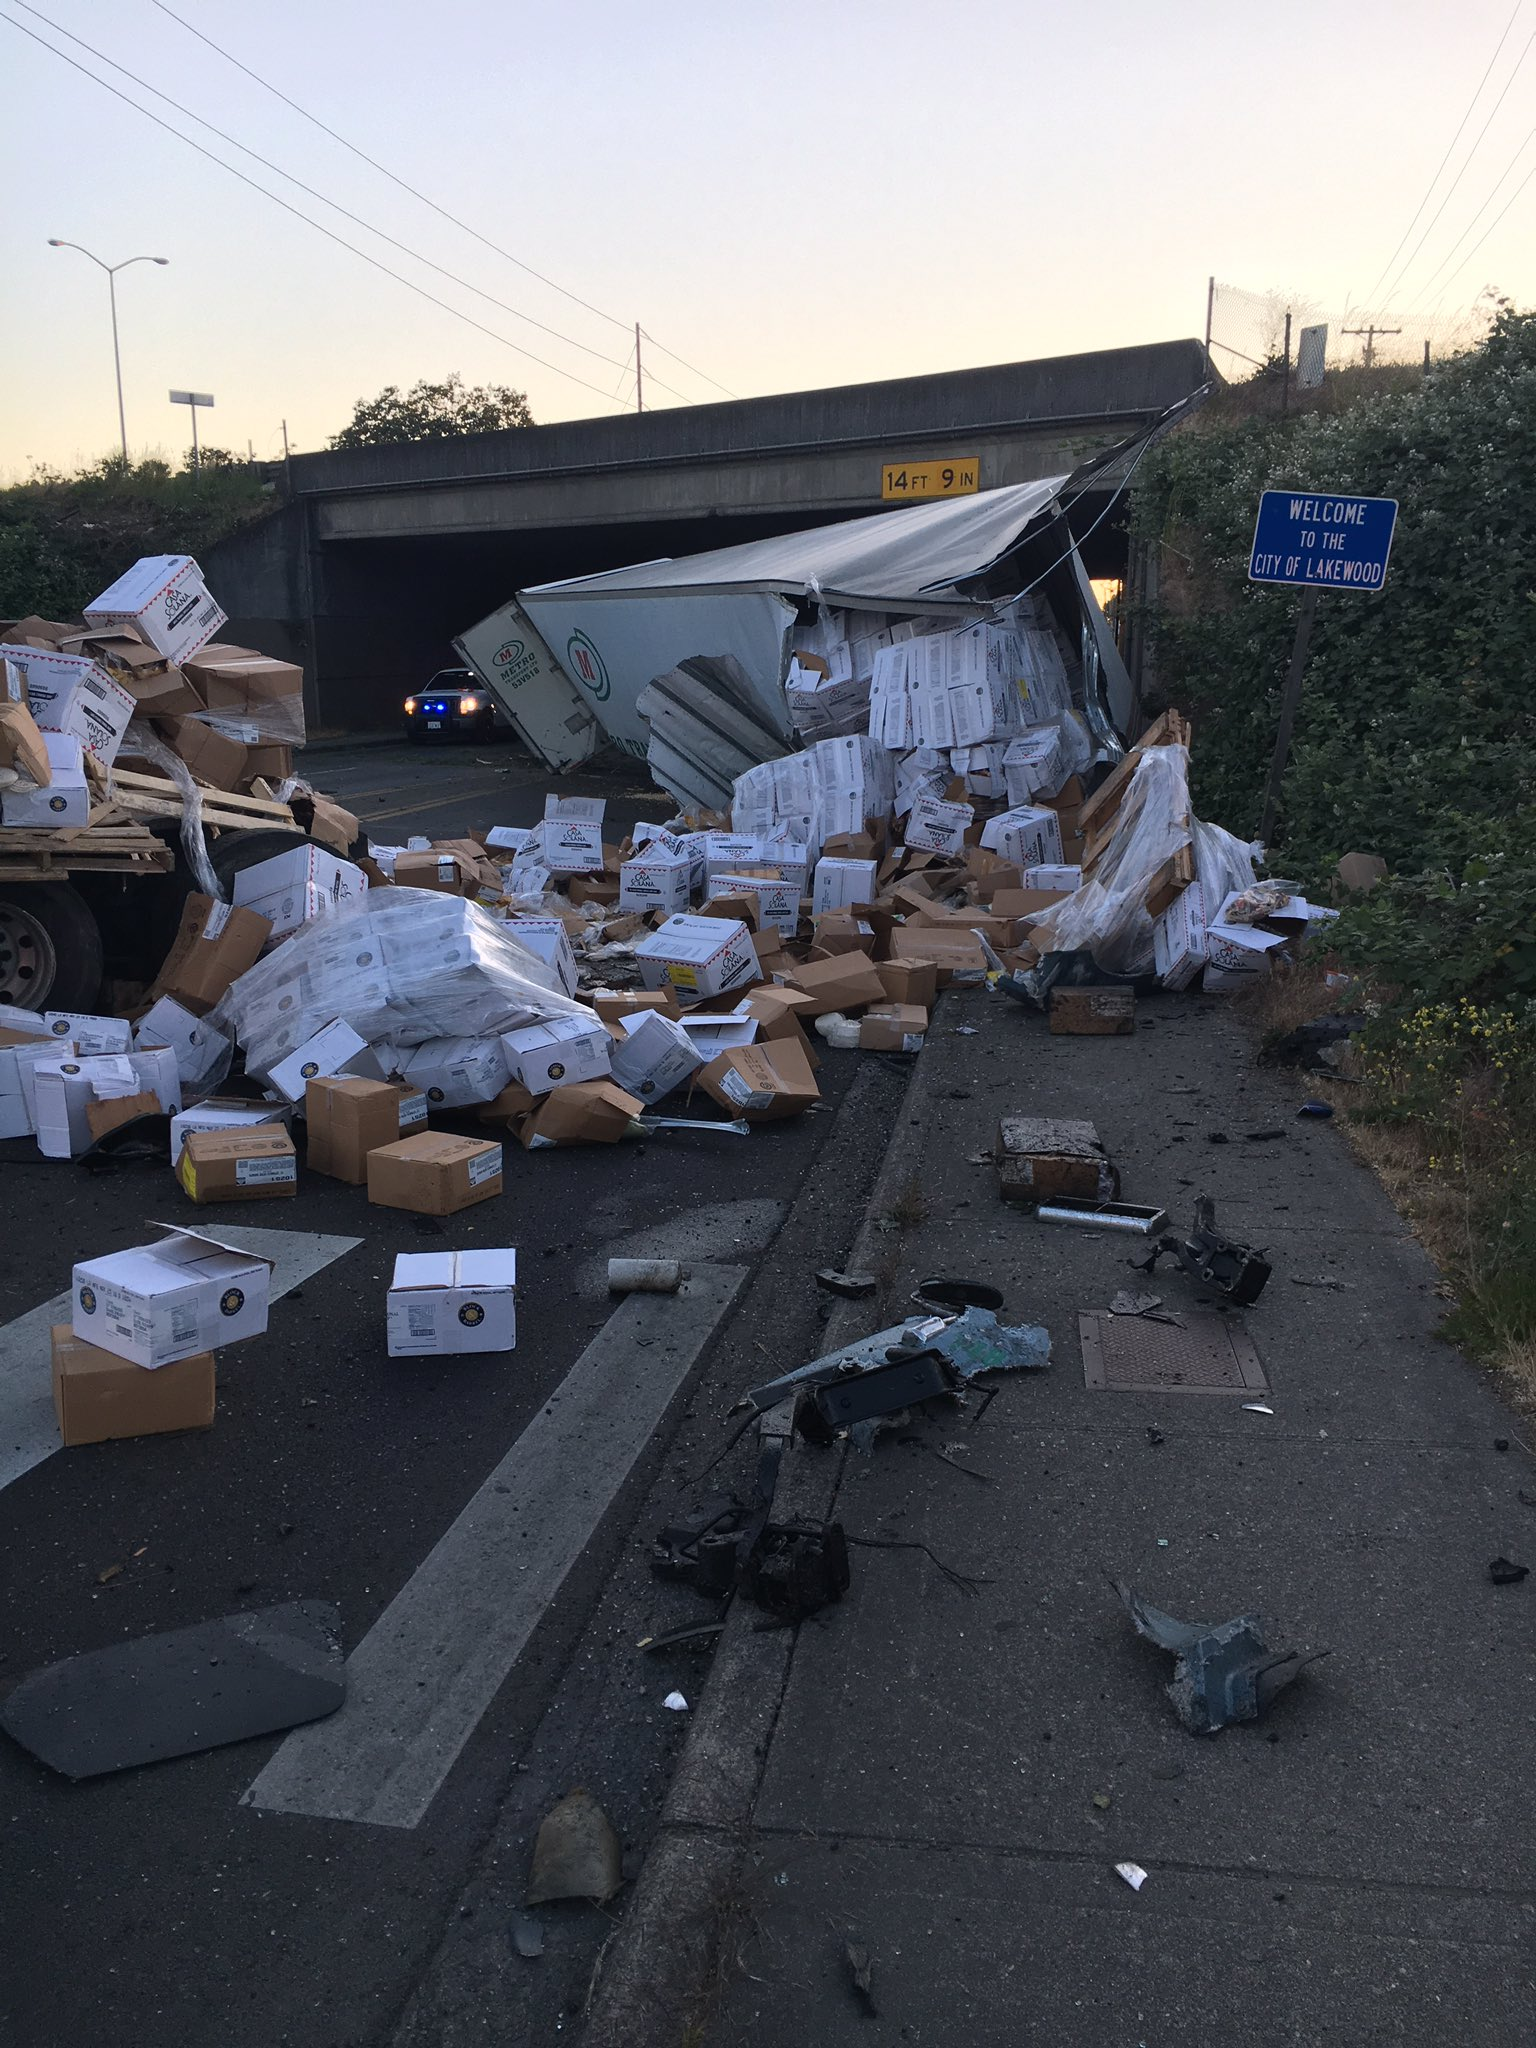 The State Patrol says a semi-truck driver fell asleep at the wheel, causing his rig and trailer to crash off northbound Interstate 5 in Lakewood Thursday night, May 31, 2018. (Photo: State Patrol)